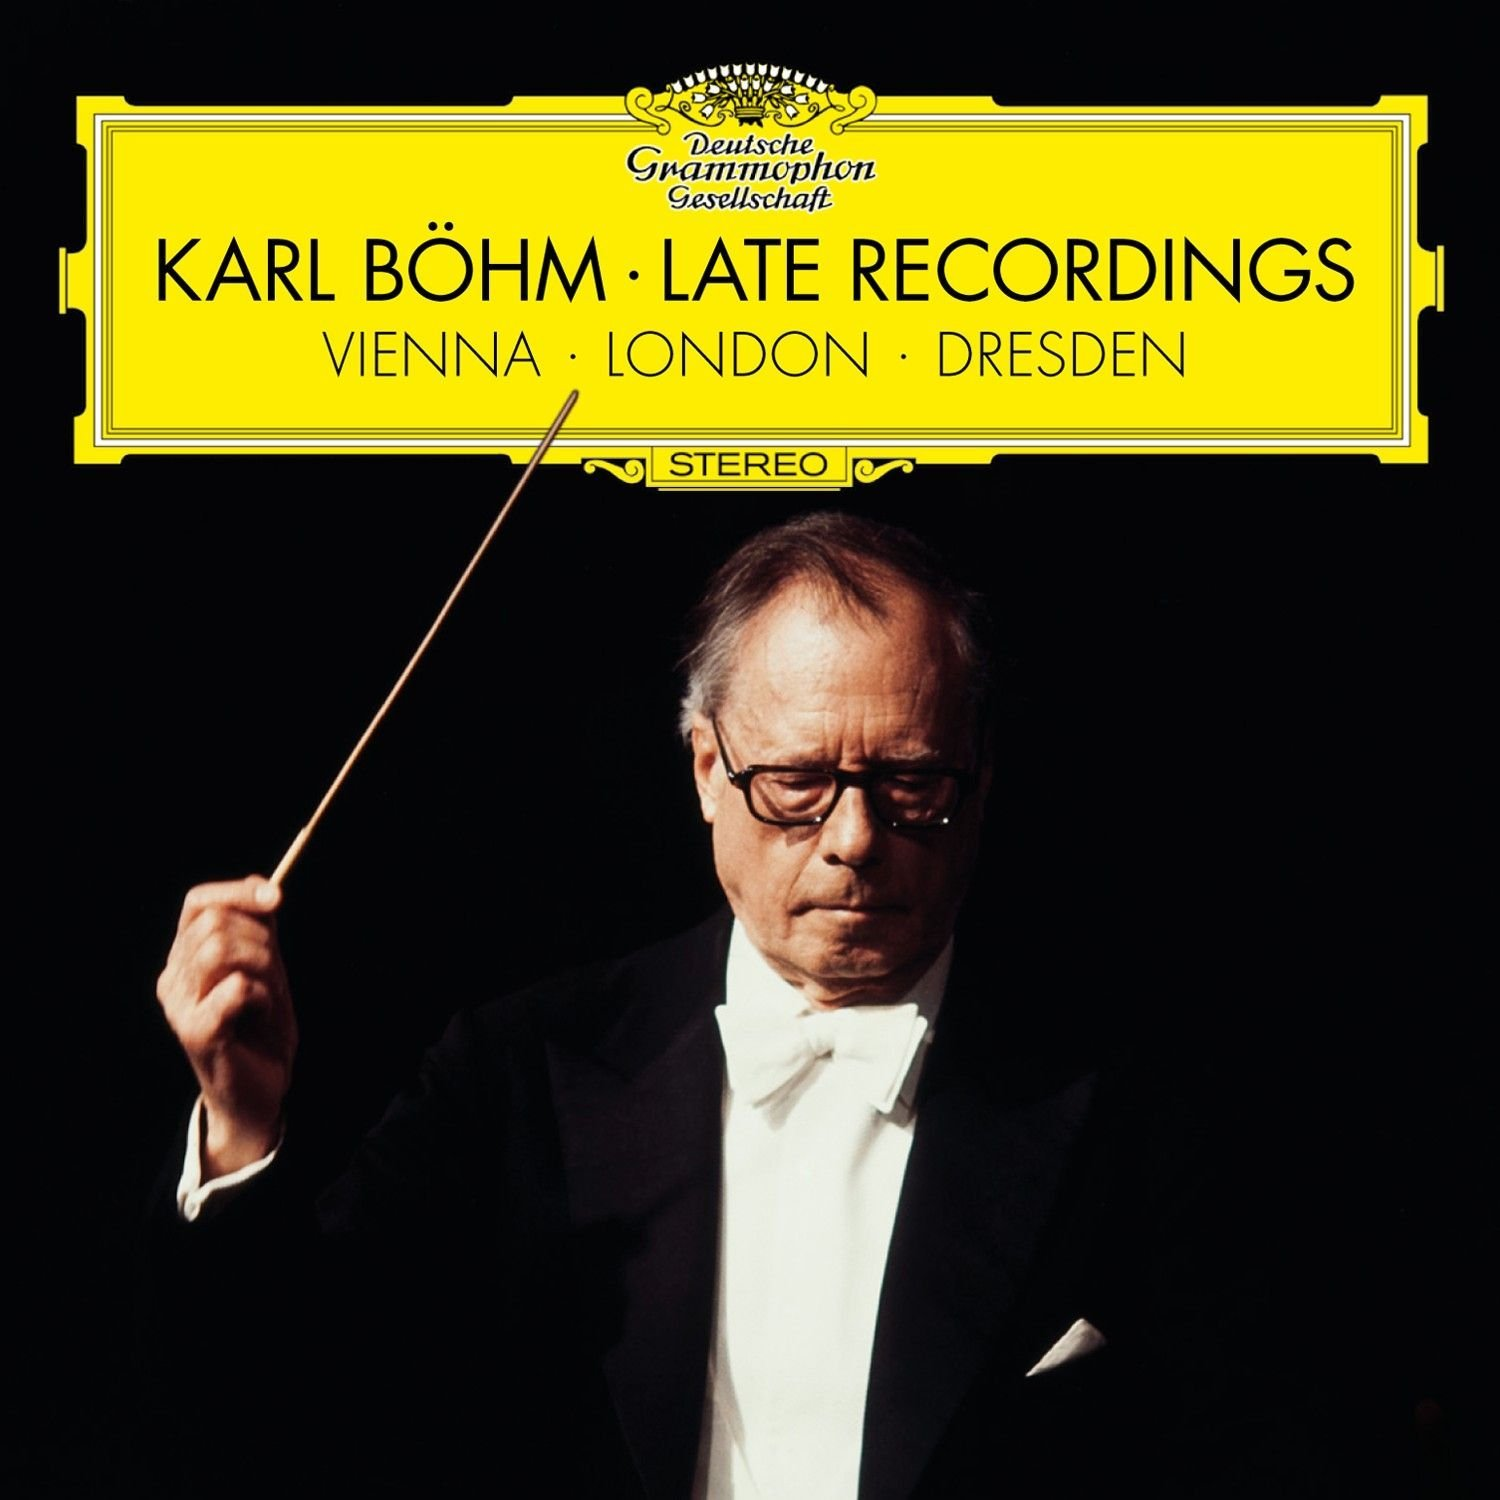 karl bohm late recordings